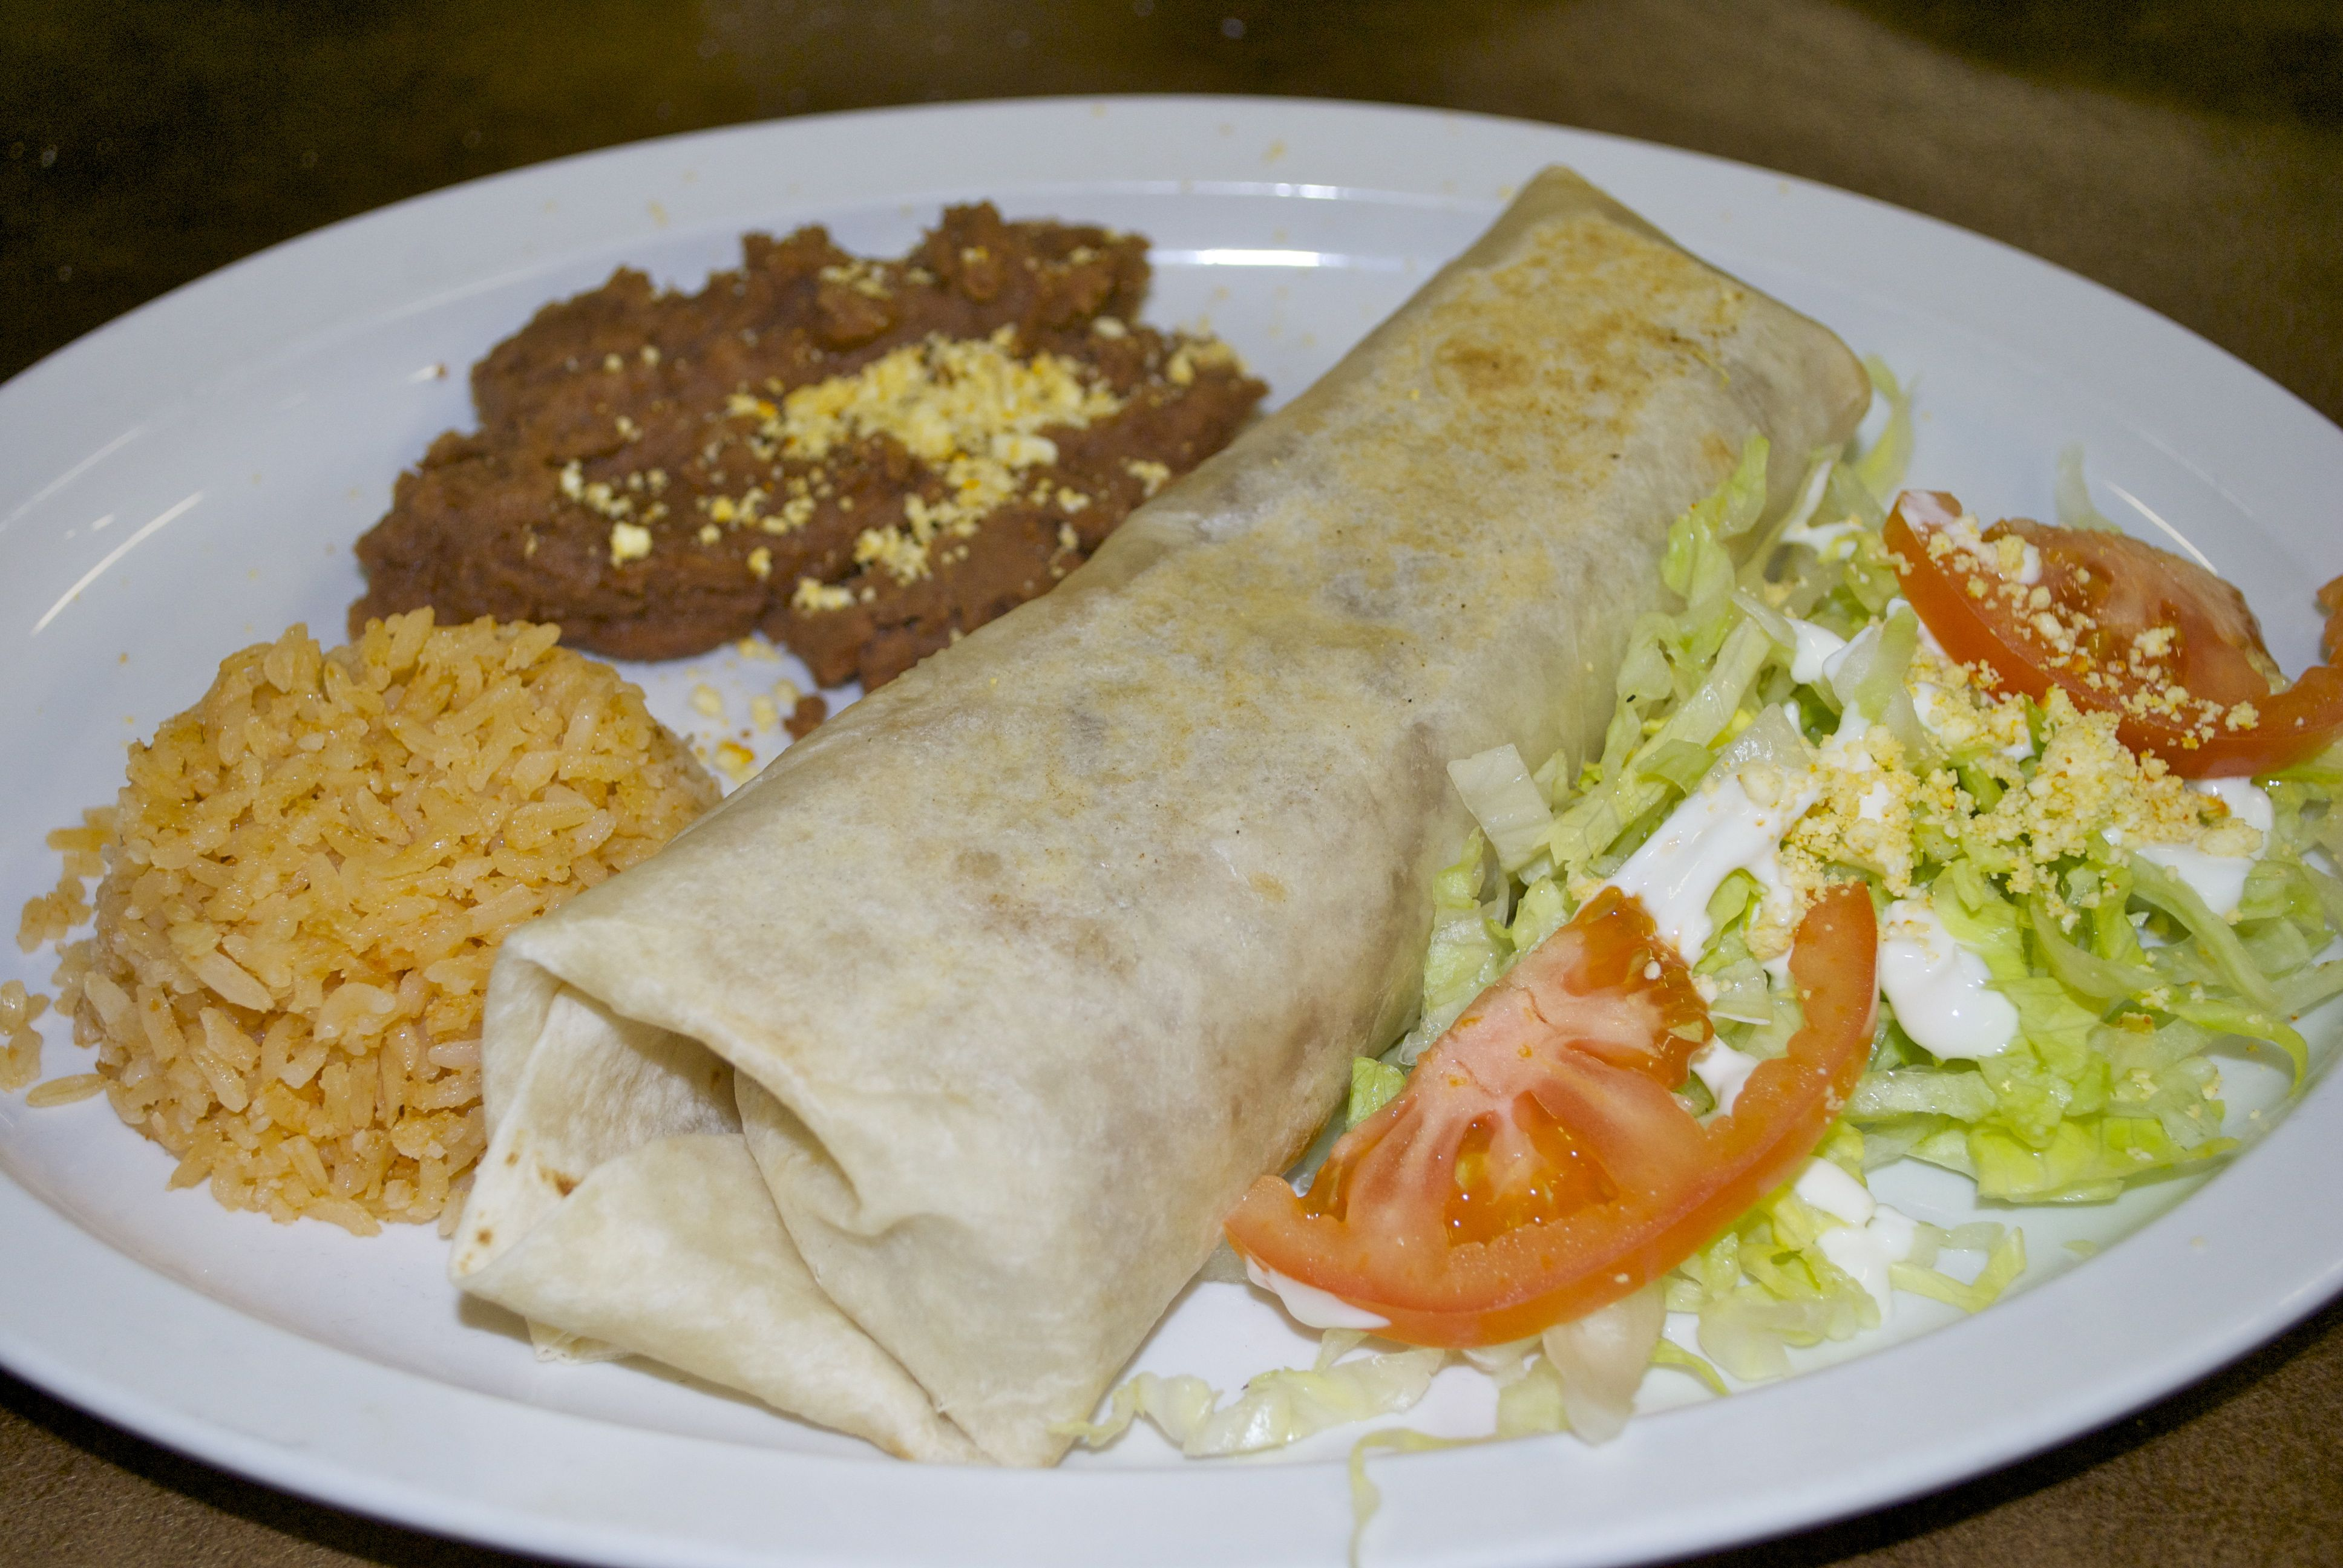 Indiana hendricks county lizton - I Went With J S Burrito And Had My Choice Of Chicken Or Beef And Went With Poultry The Service At J S Was Friendly The Food Came Out In A Timely Fashion